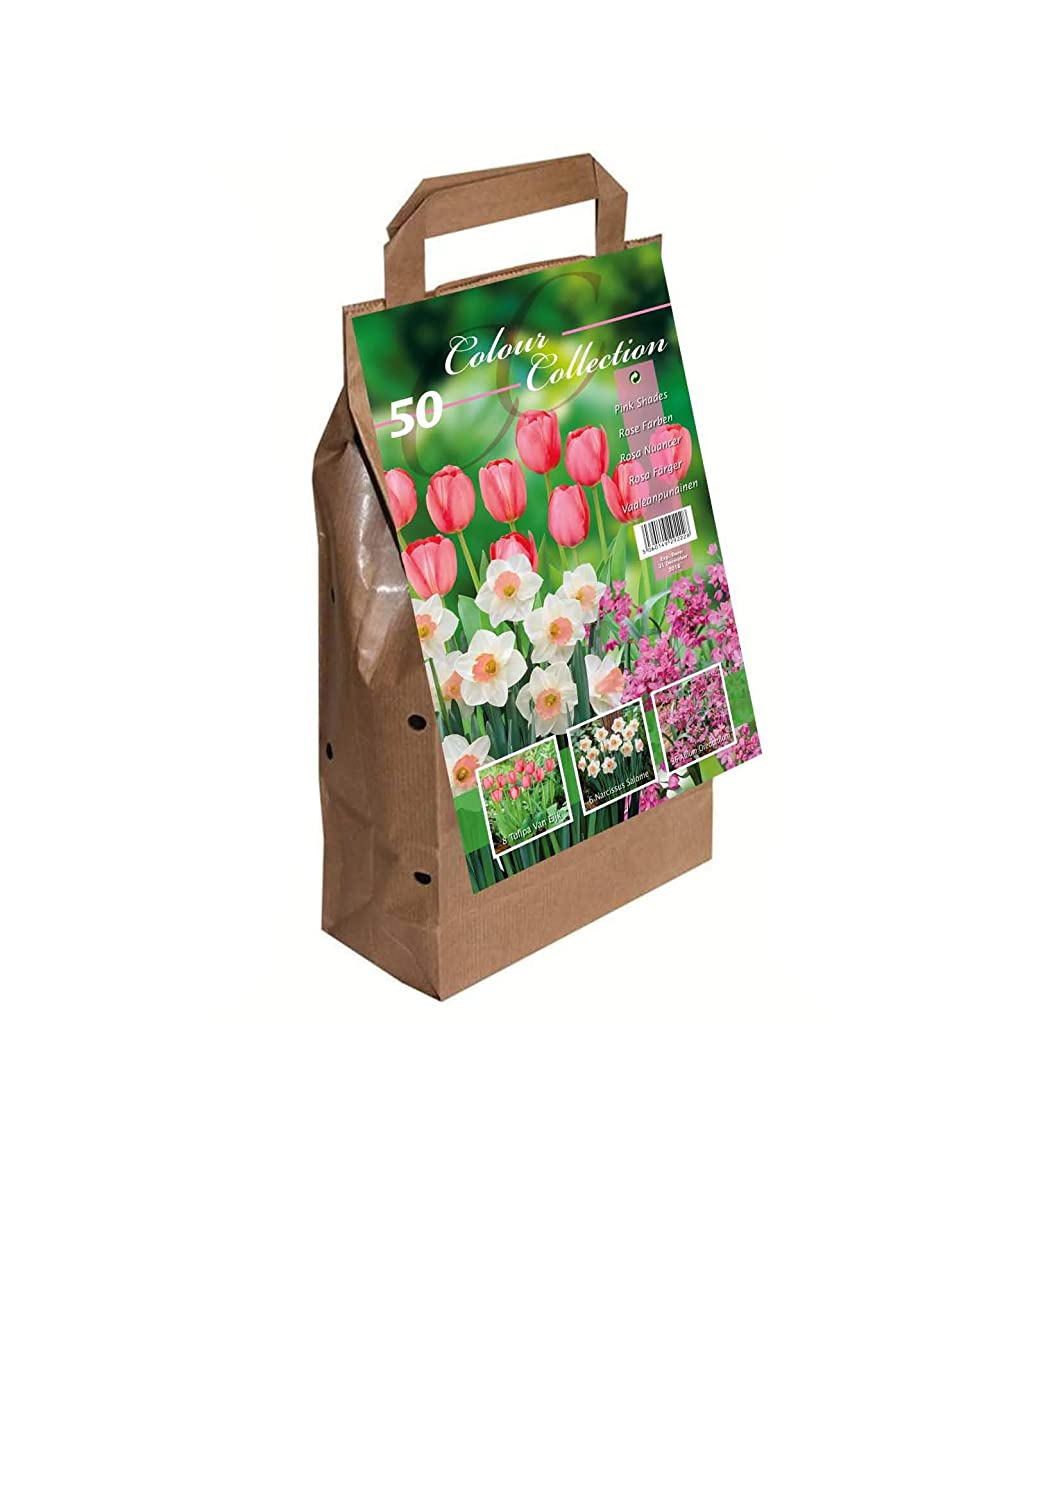 Greenbrokers Colour Harmony Lot de 25 bulbes à fleurs Mélange de fleurs du printemps Rose Greenbrokers Limited FB14